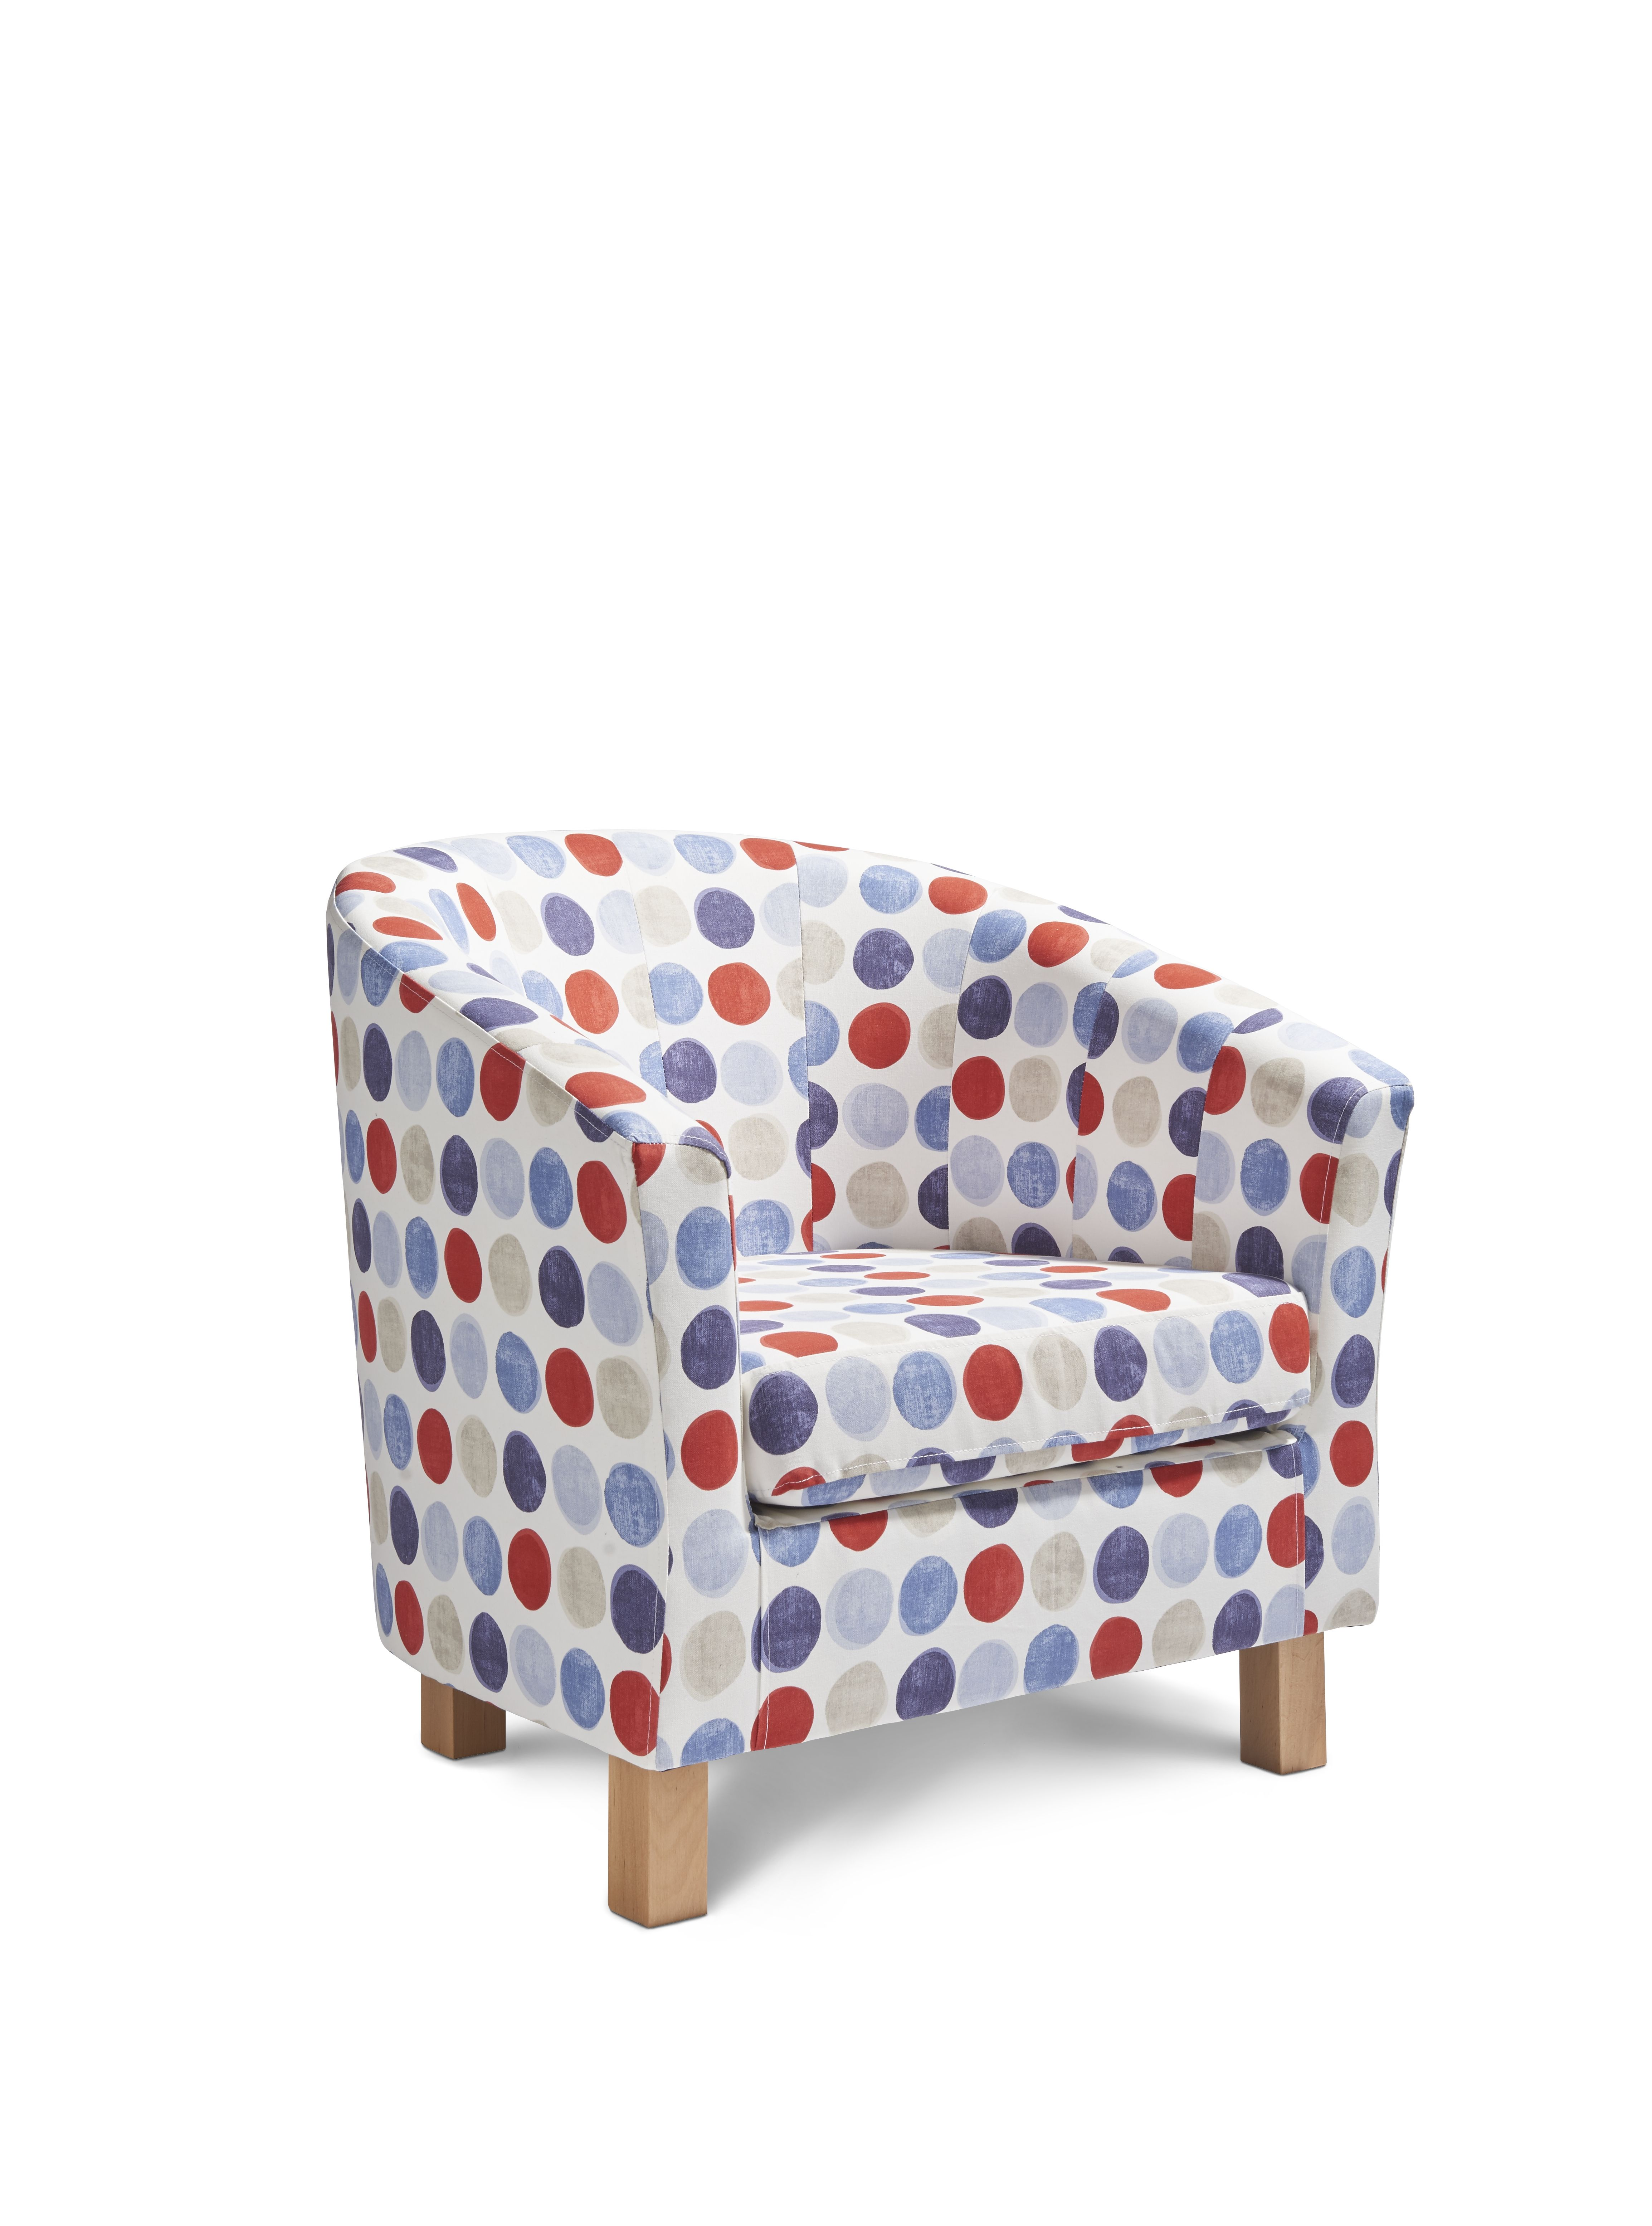 Tub Accent Chair Diy Dining Seat Covers The Egypt Helix Is A Stunning Piece That Will Look Amazing In Any